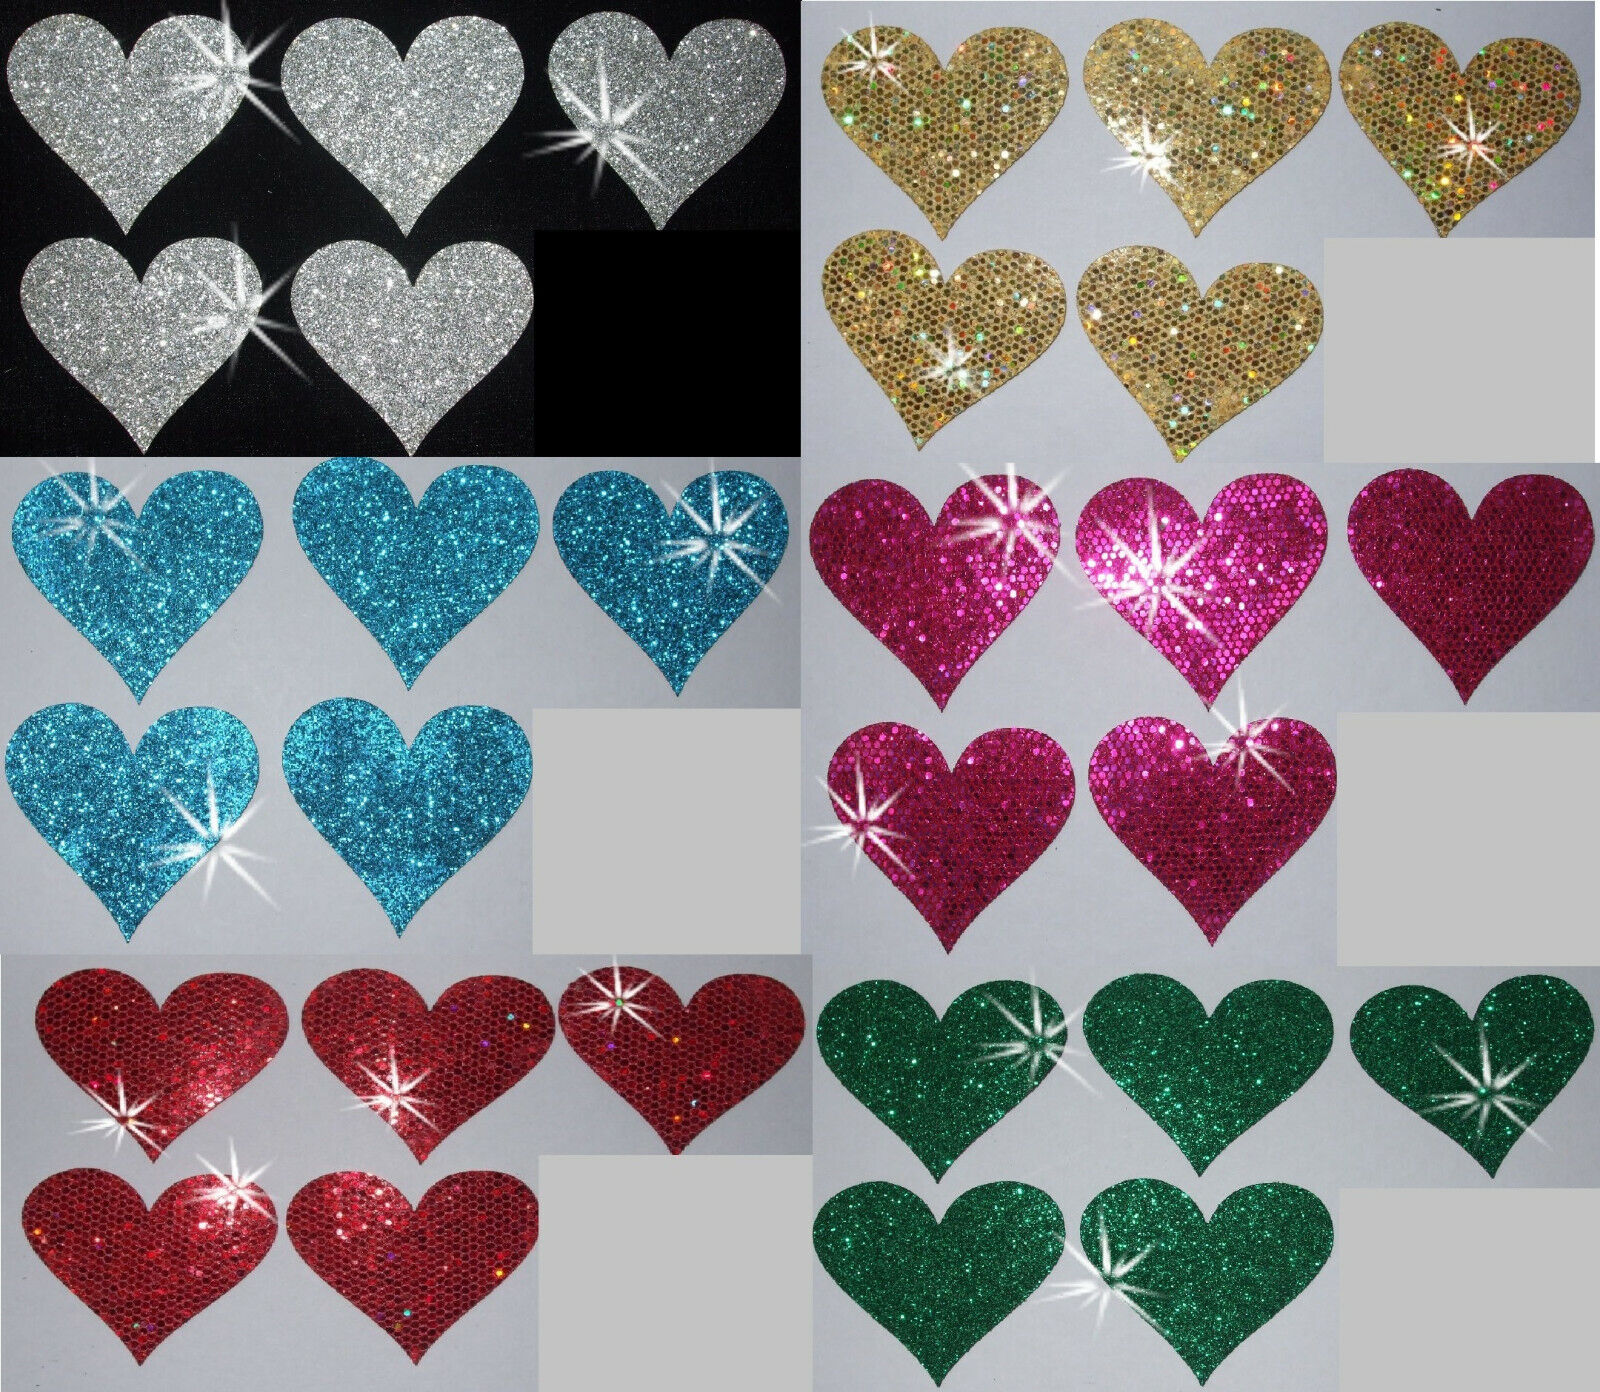 FABRIC SEQUIN 40mm HEARTS IRON-ON DIY TSHIRT TRANSFER PATCH CARD MAKING TOPPER